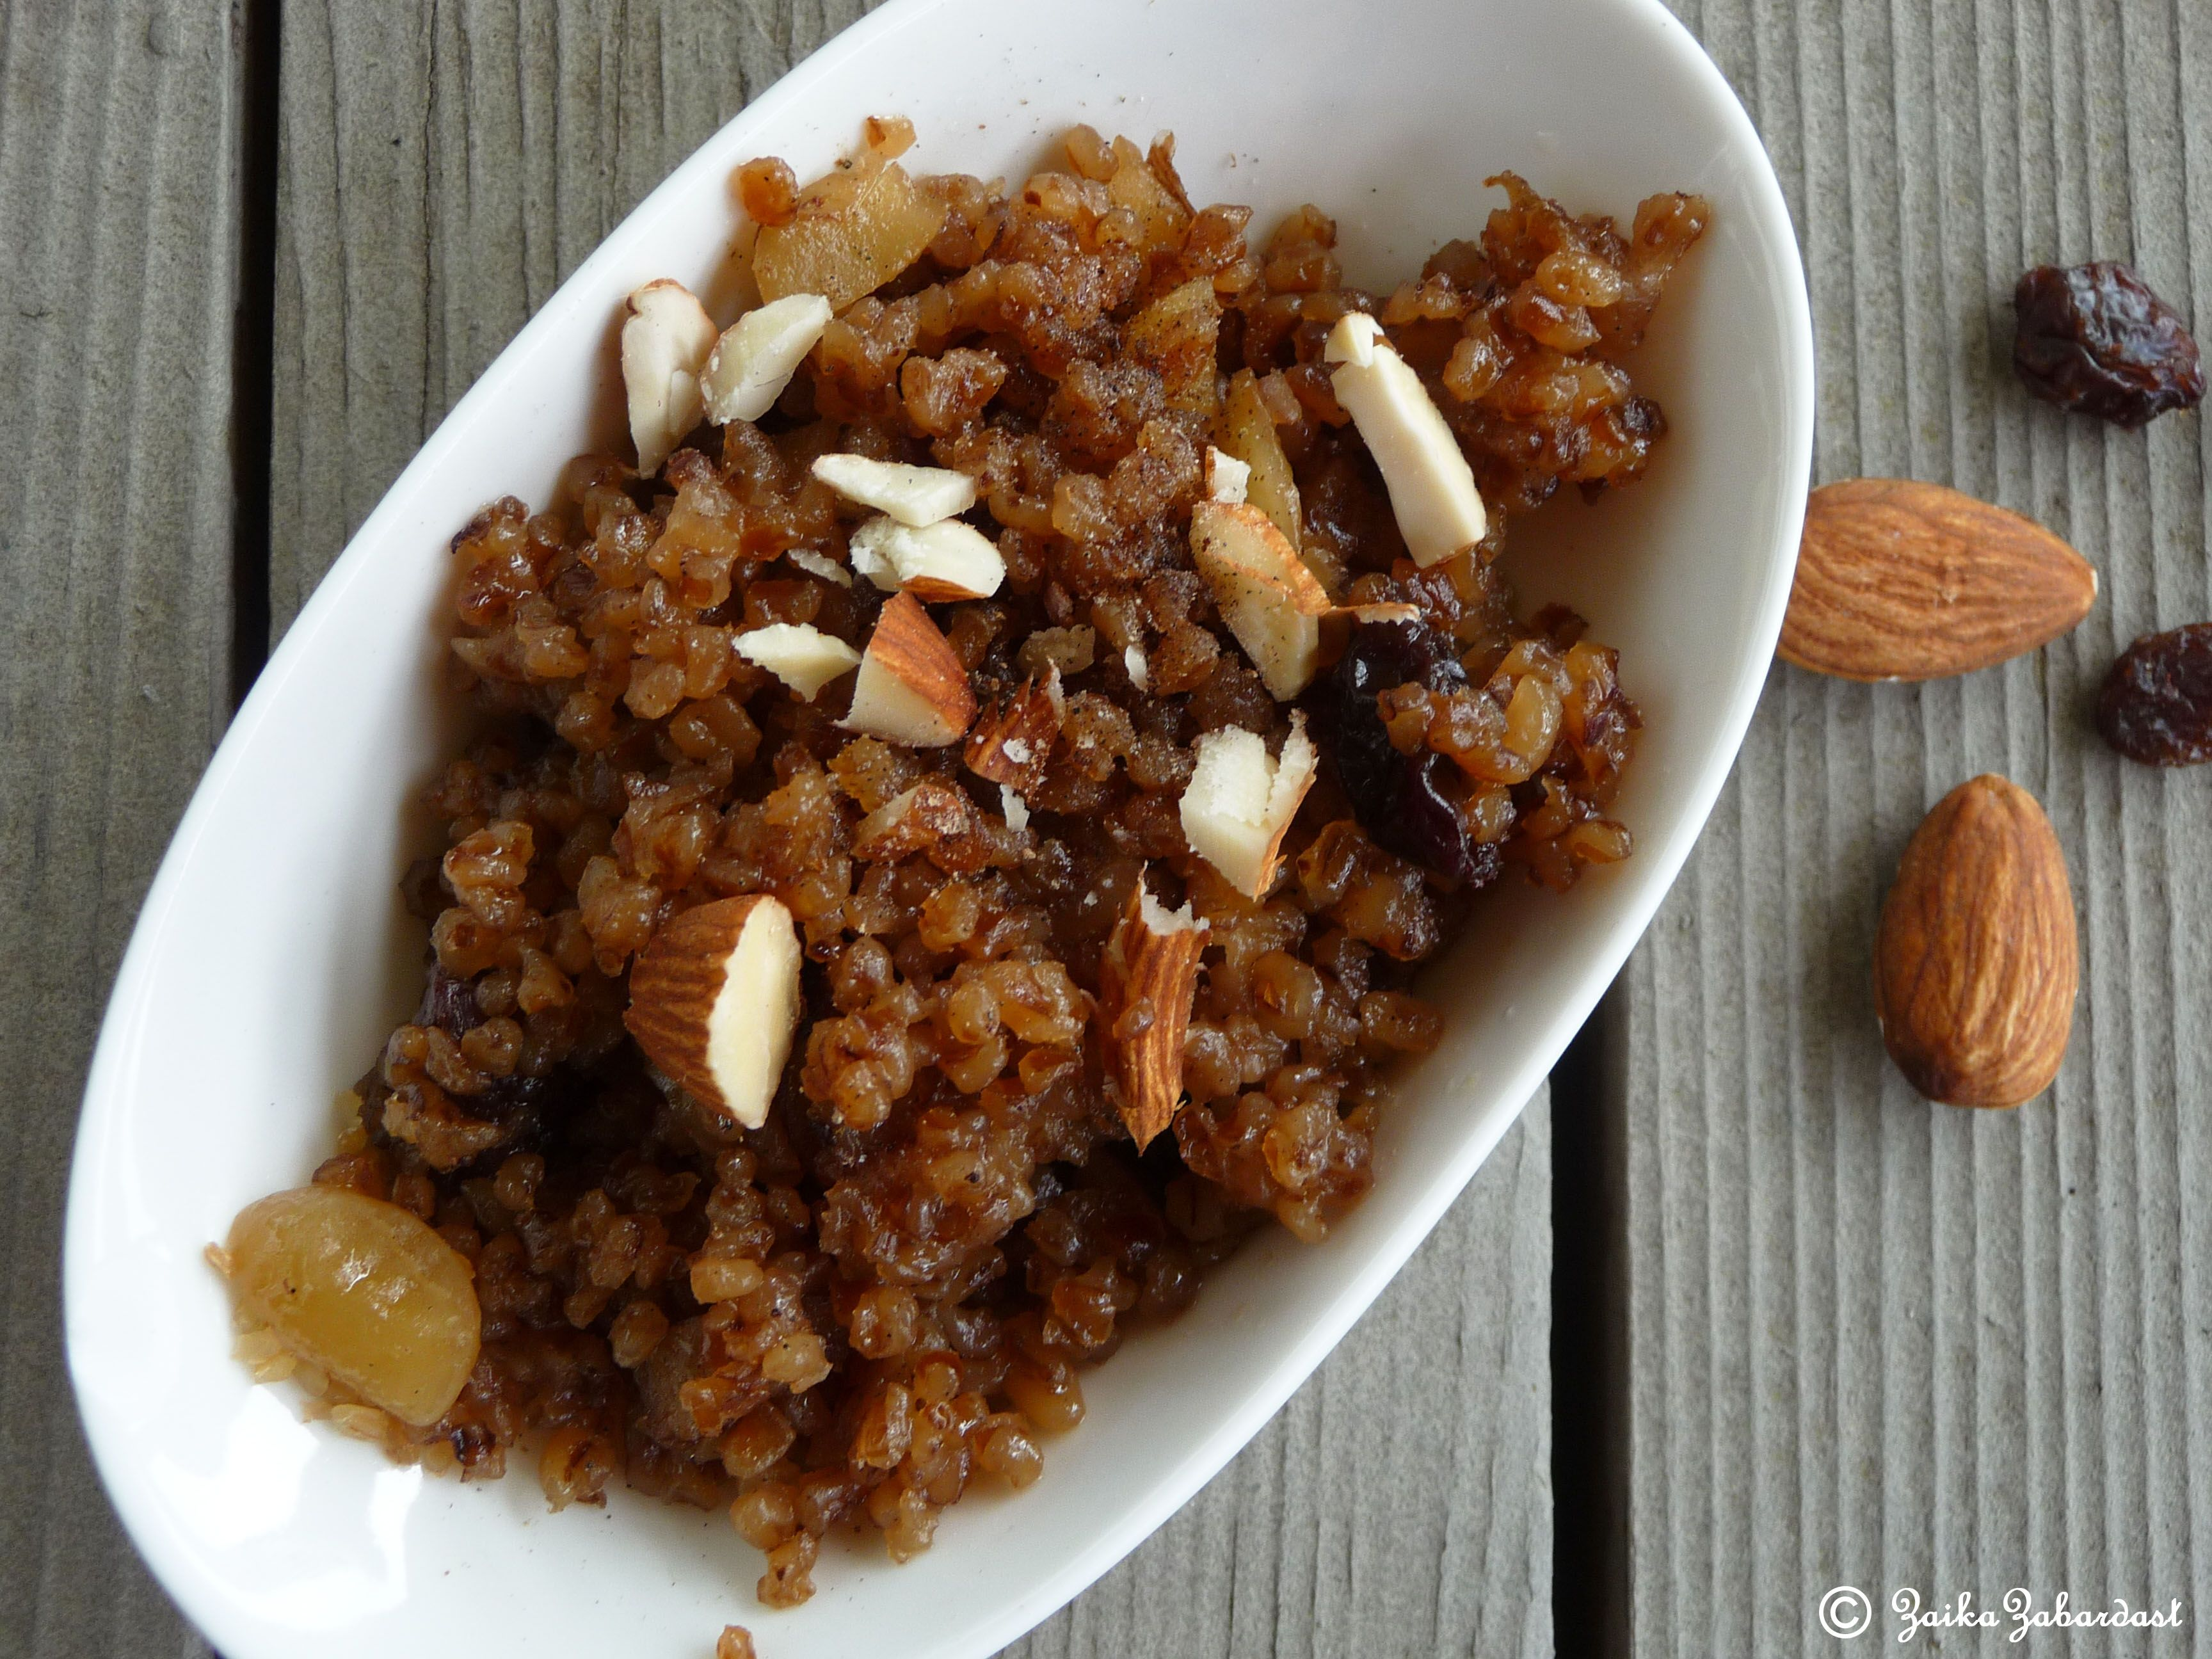 Step-by-step recipe for making kutia from wheat 1